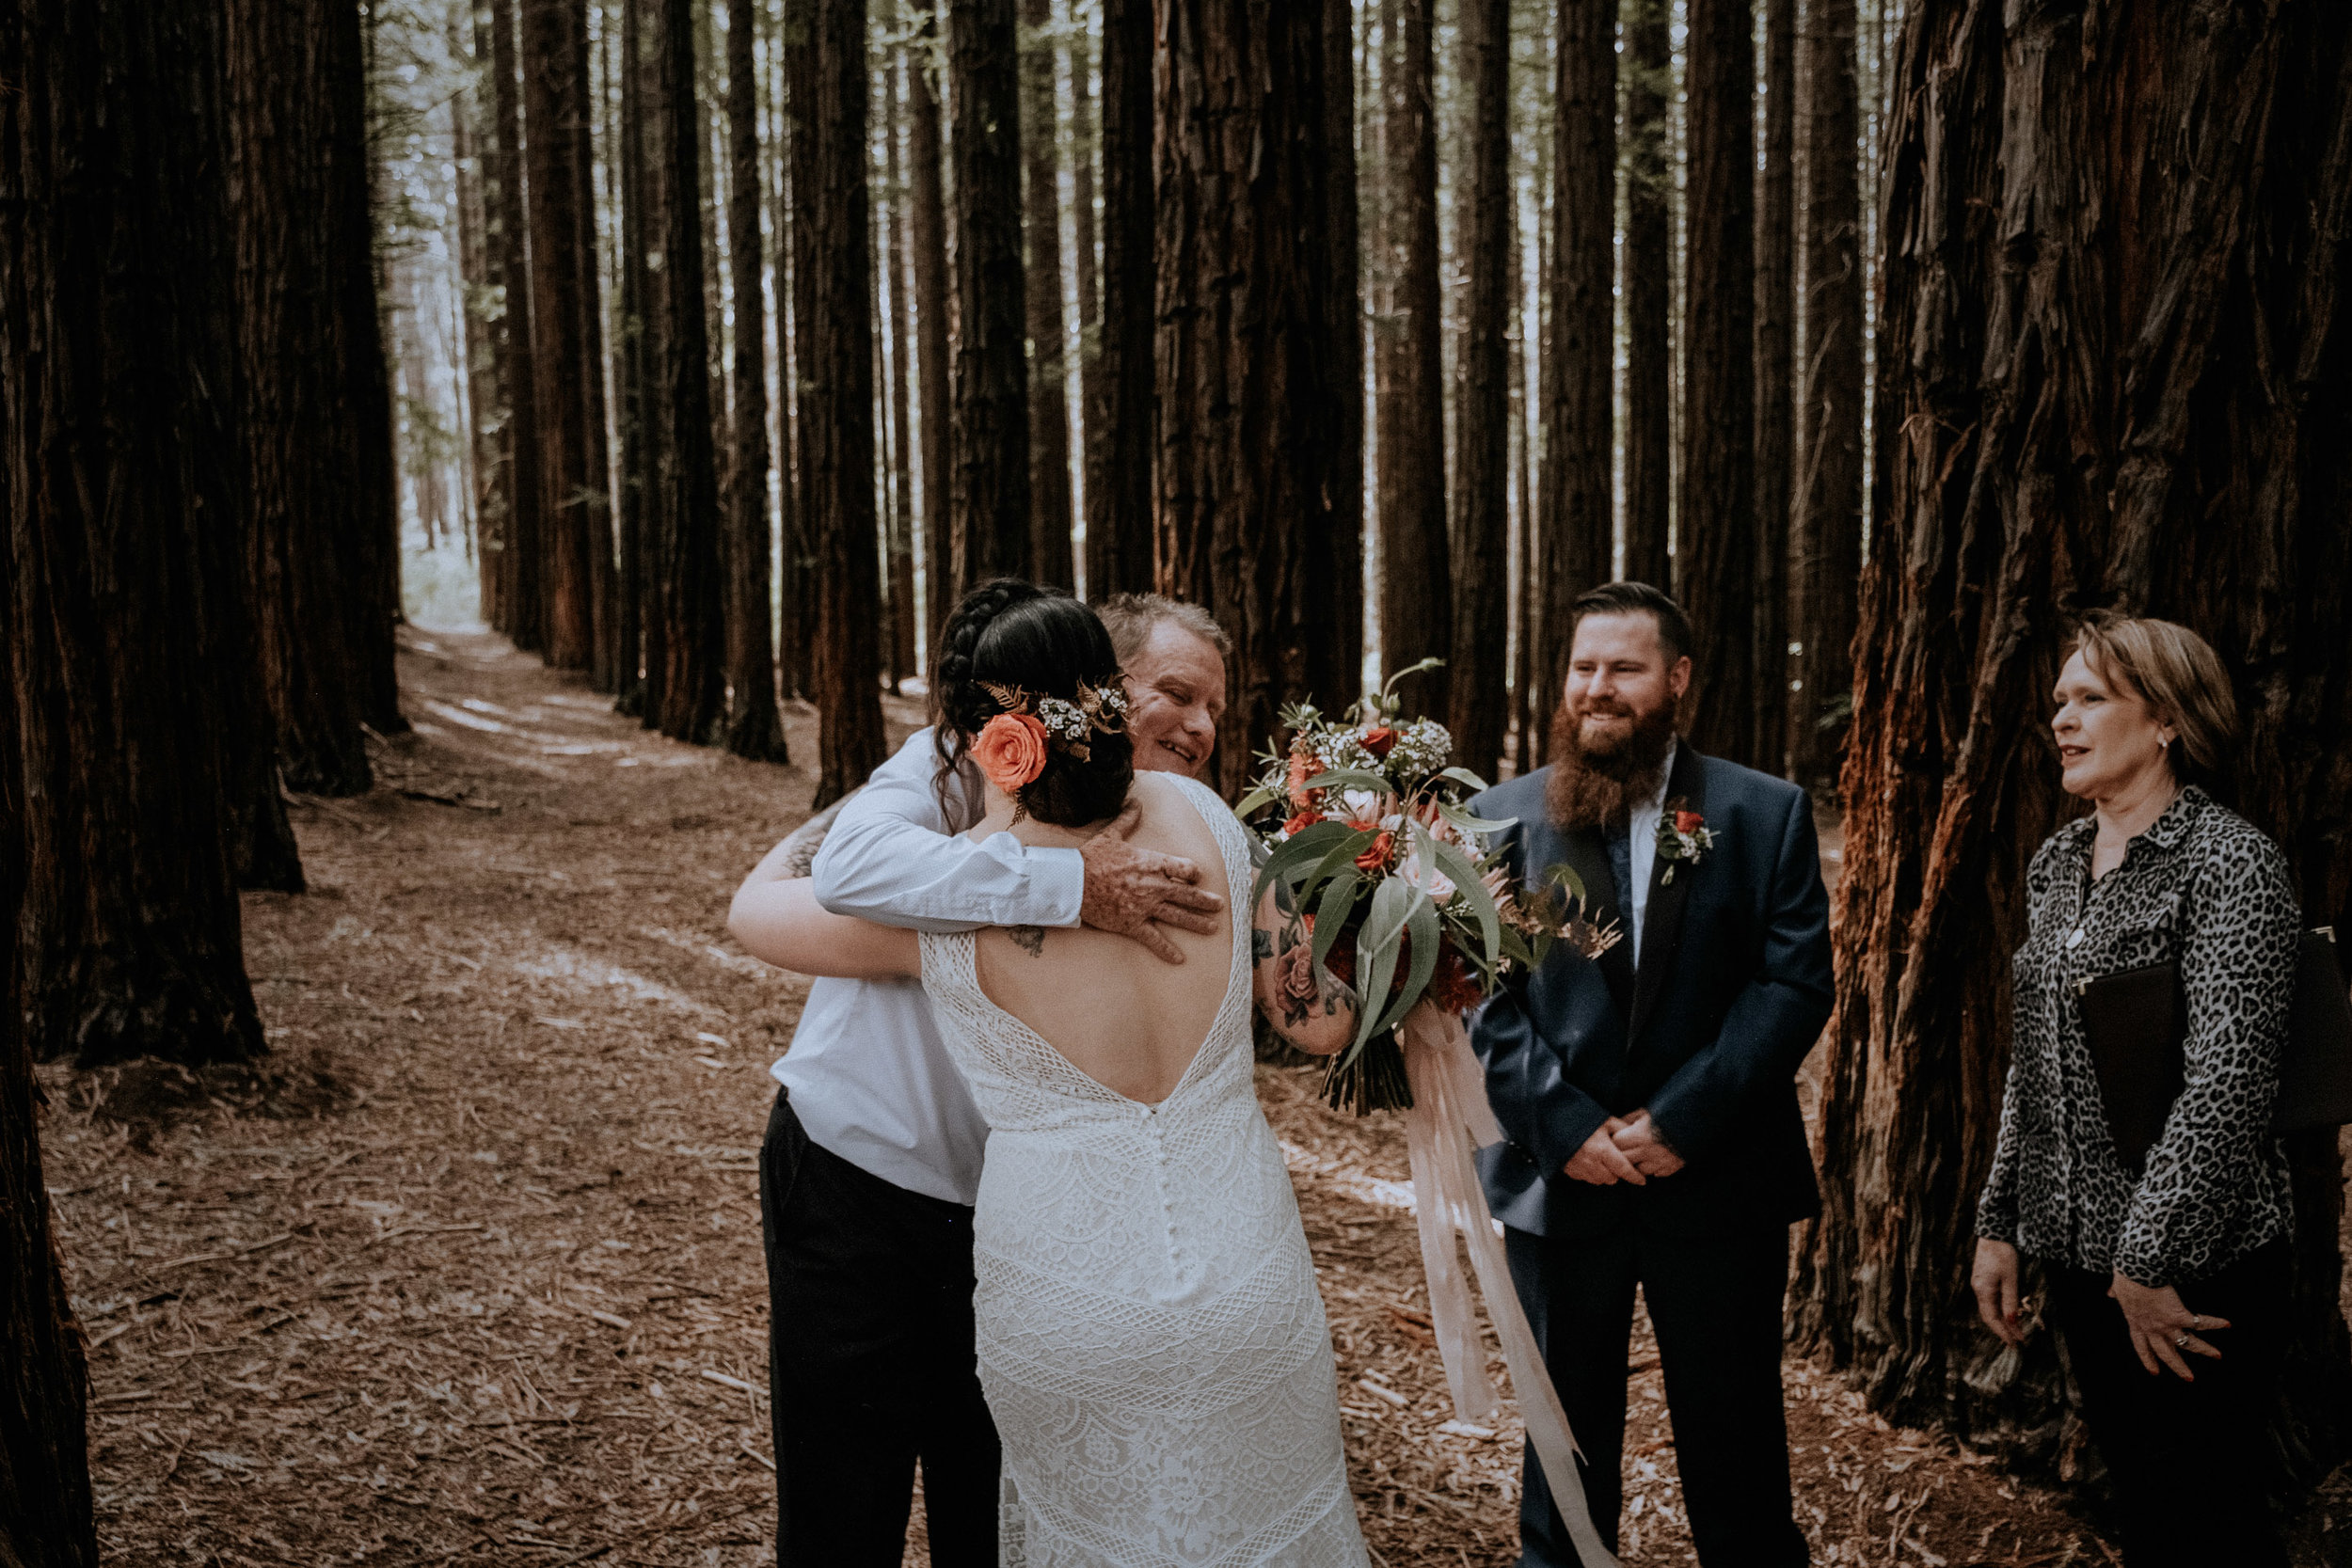 A dad giving away the bride at her small wedding, candidly captured with intimate vibes, in the Redwood Forest in Warburton, near Melbourne